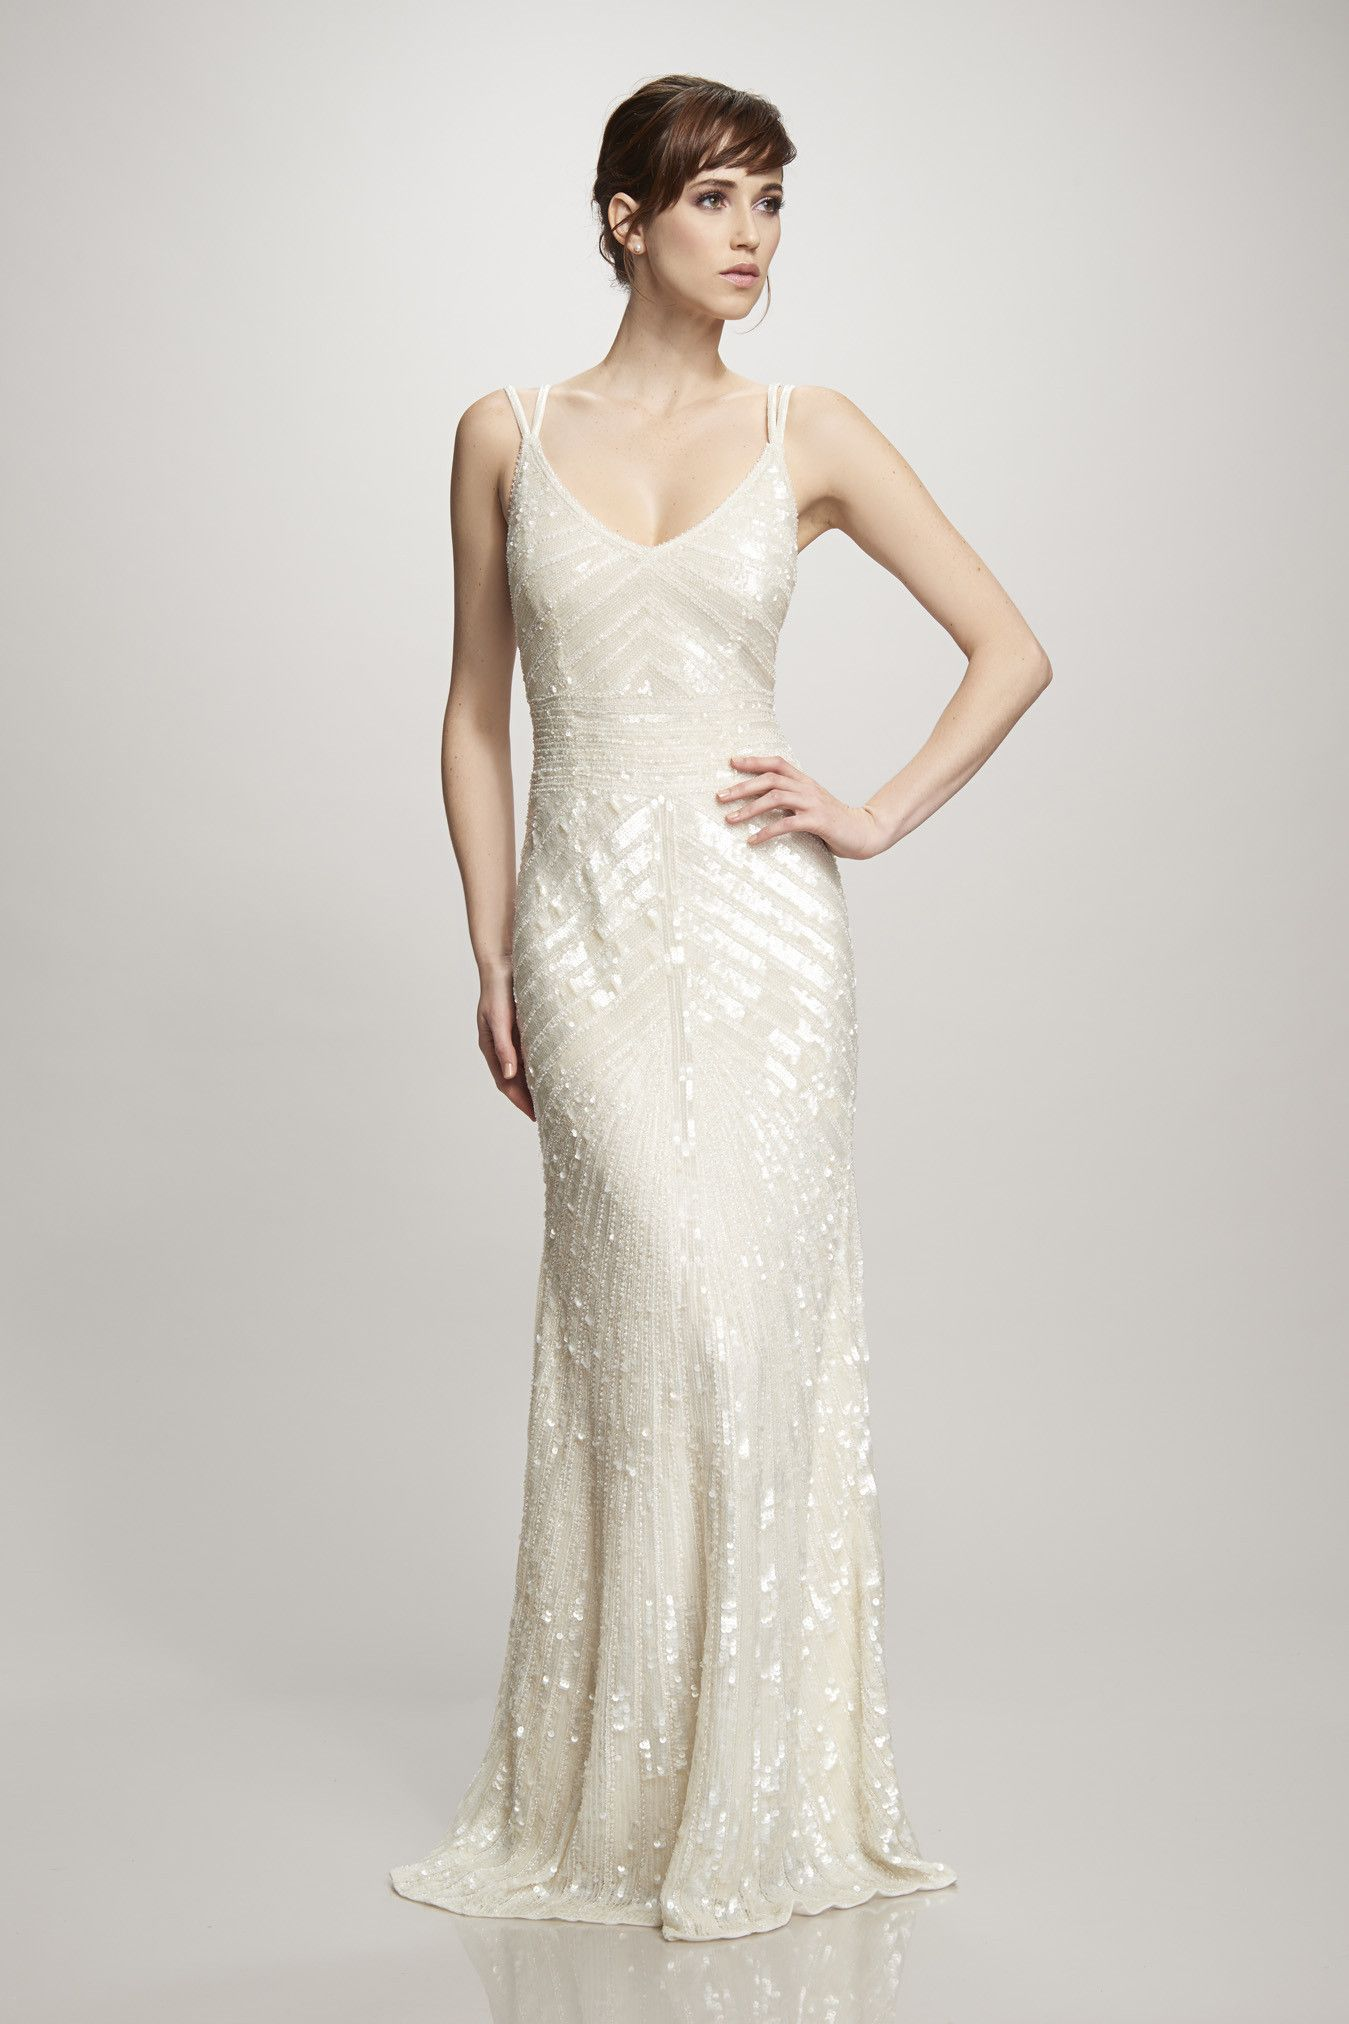 Miltered sequin gown   gowns   Pinterest